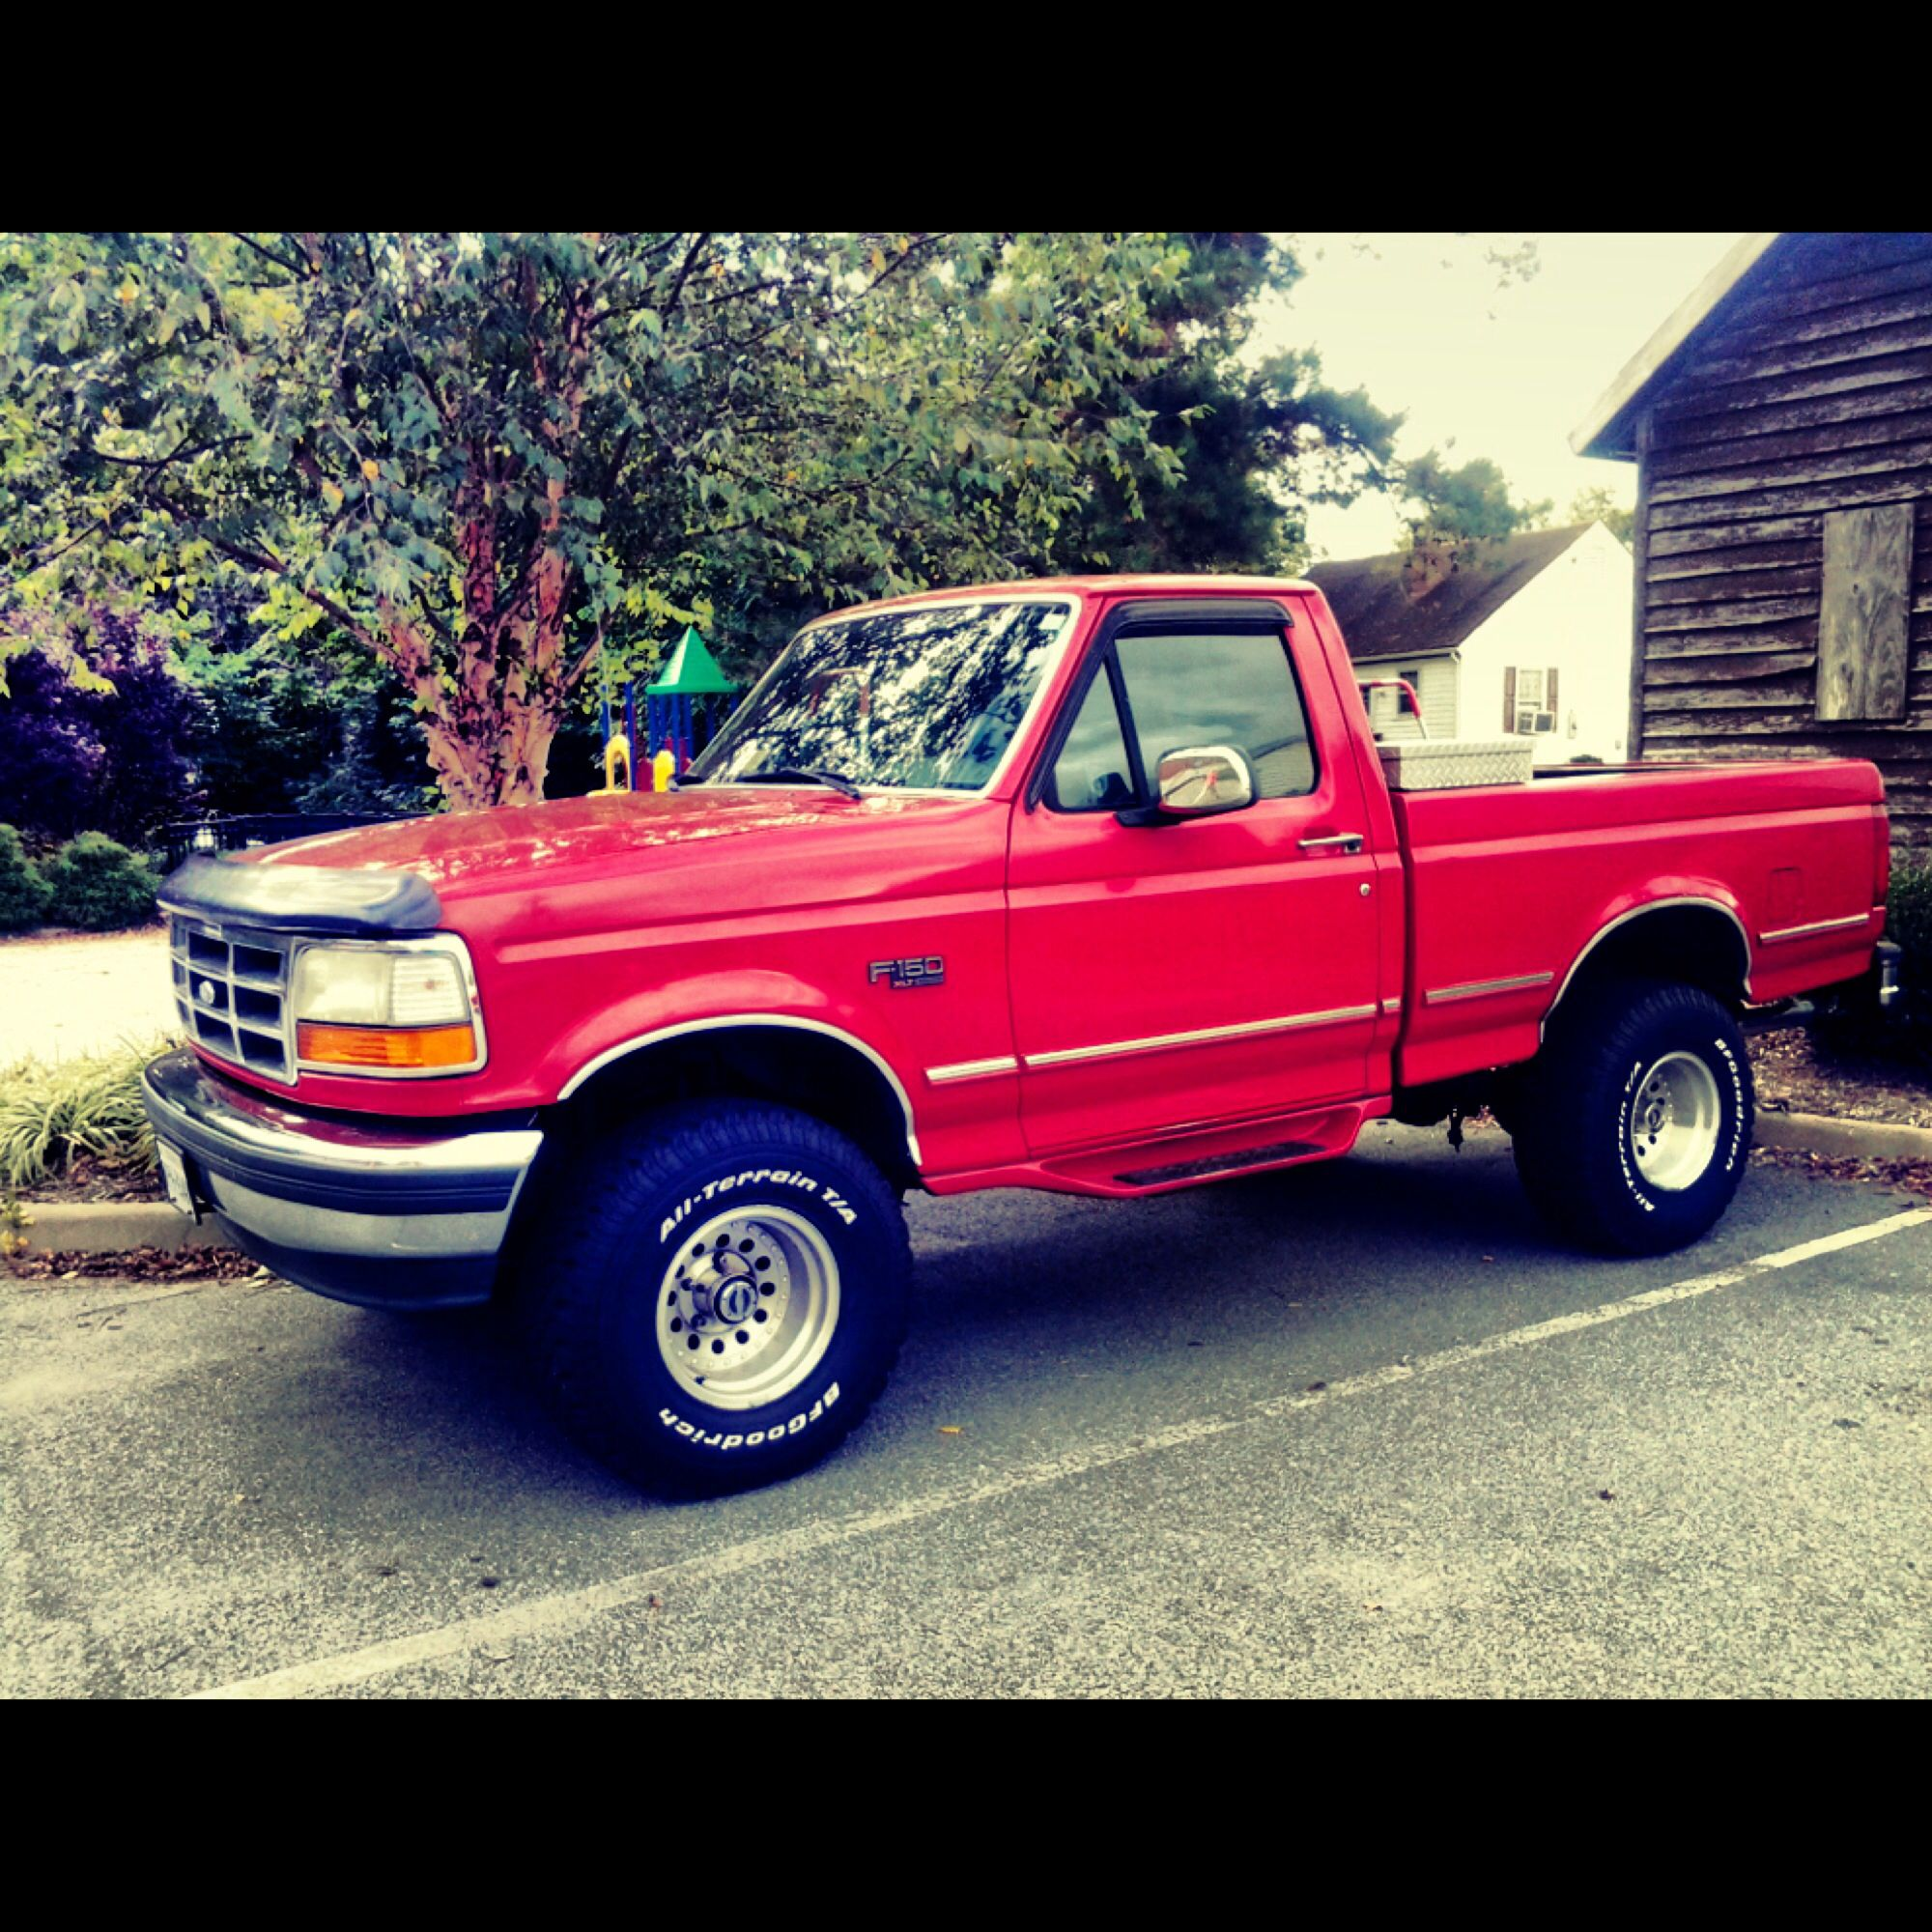 small resolution of my baby for life 1995 ford f150 4x4 on 33s